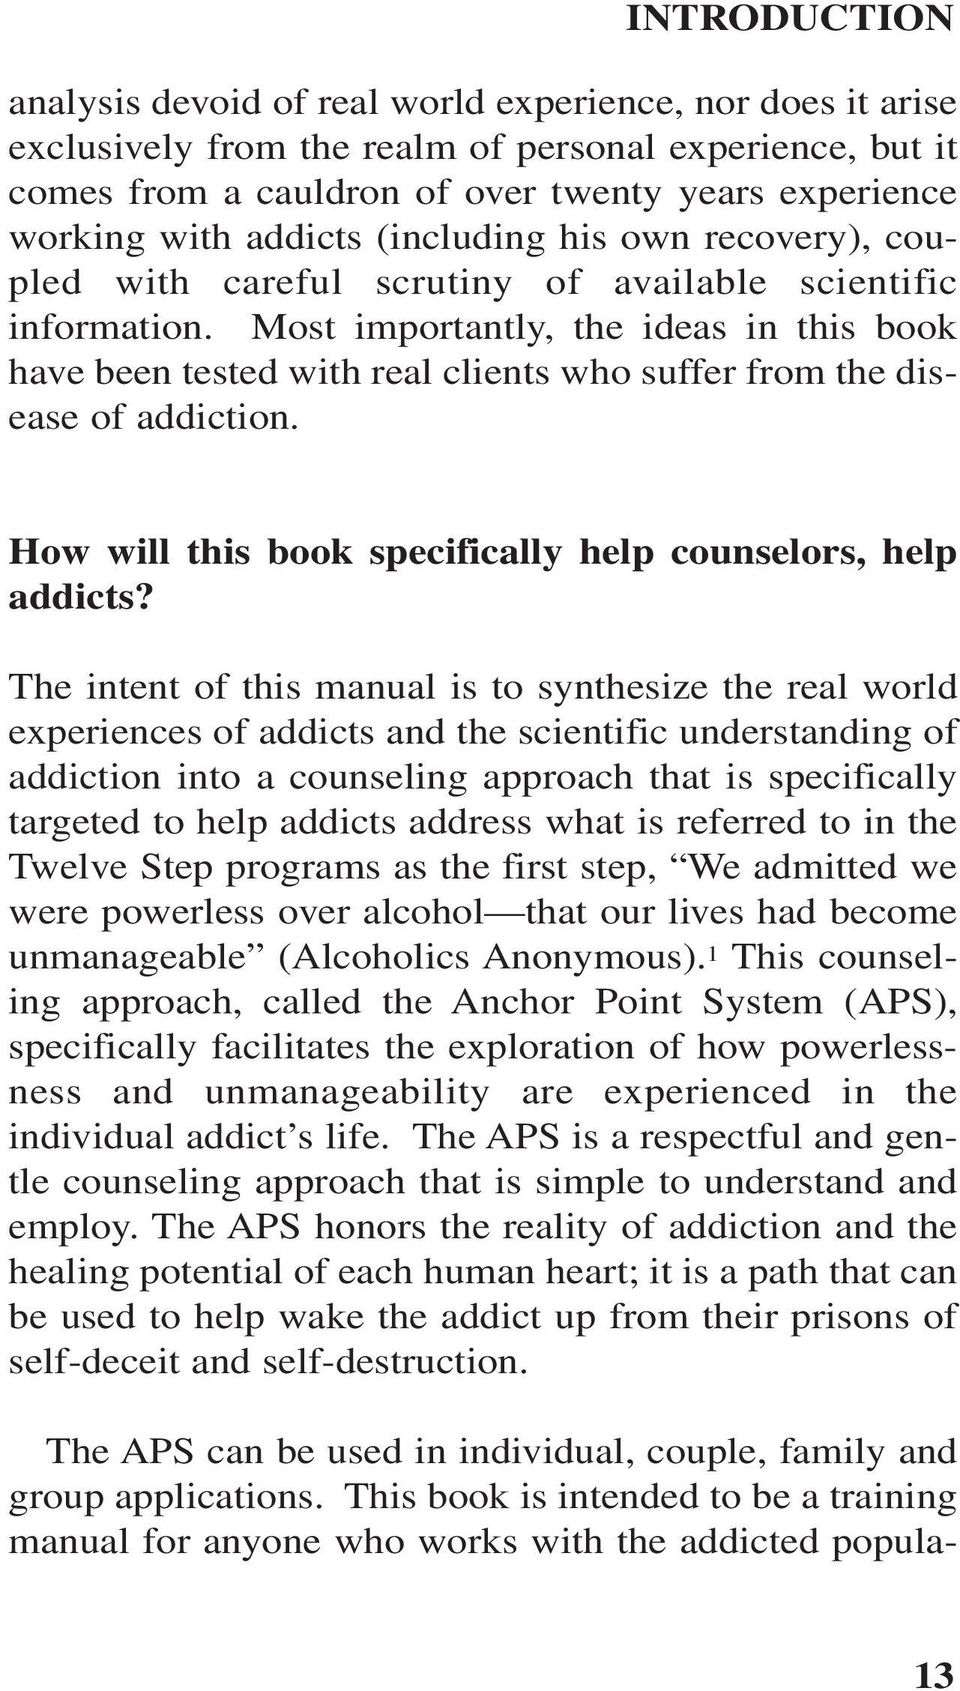 Most importantly, the ideas in this book have been tested with real clients who suffer from the disease of addiction. How will this book specifically help counselors, help addicts?